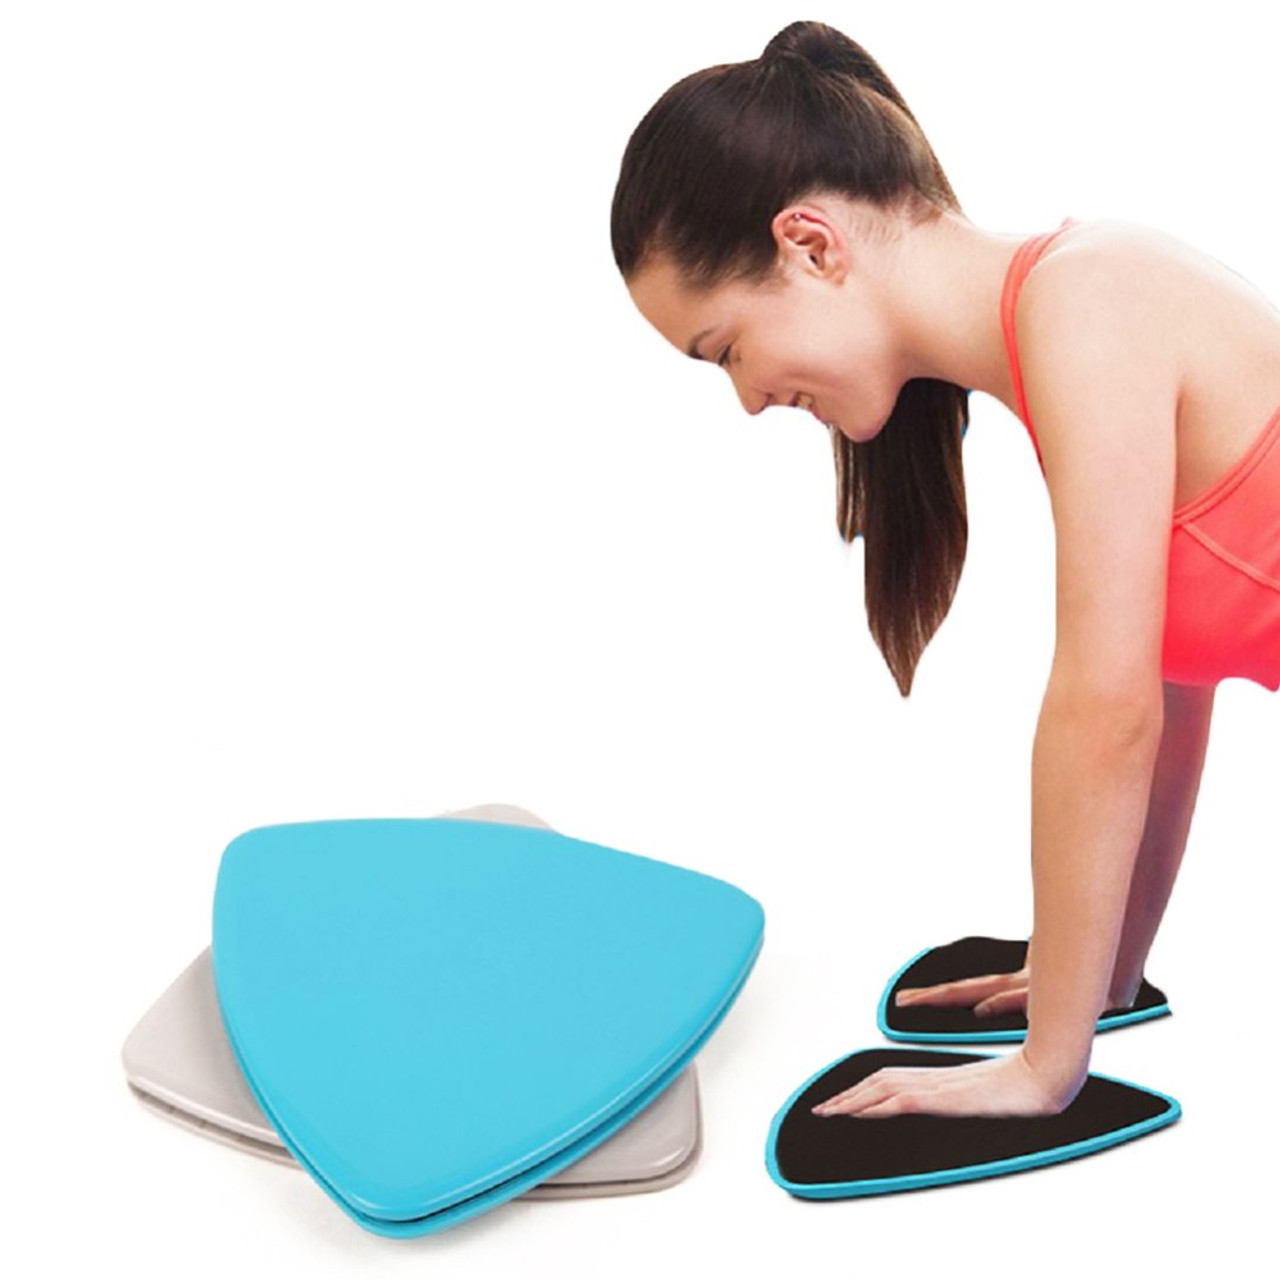 Capable Gliding Discs Slider Fitness Disc Exercise Sliding Plate For Yoga Abdominal Core Training Exercise Gym Equipment Accessories Accessories Fitness & Body Building